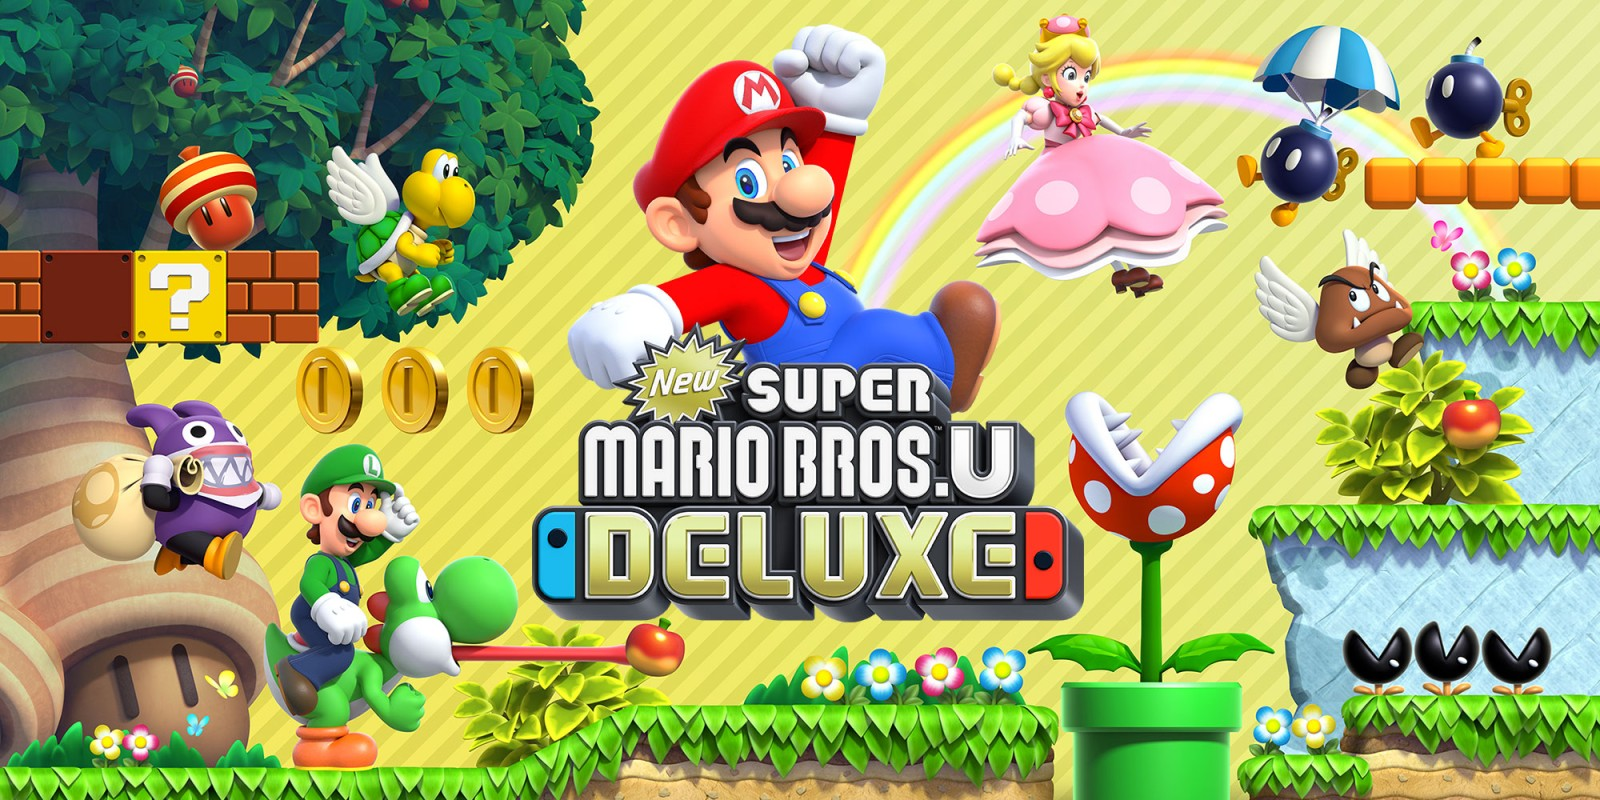 New Super Mario Bros U Deluxe Nintendo Switch Games Nintendo 1600x800